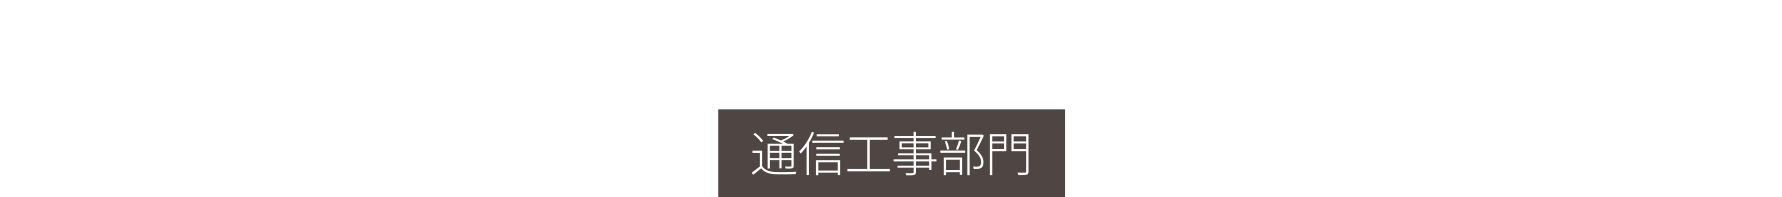 COMMUNICATIONS CONSTRUCTION 通信工事部門